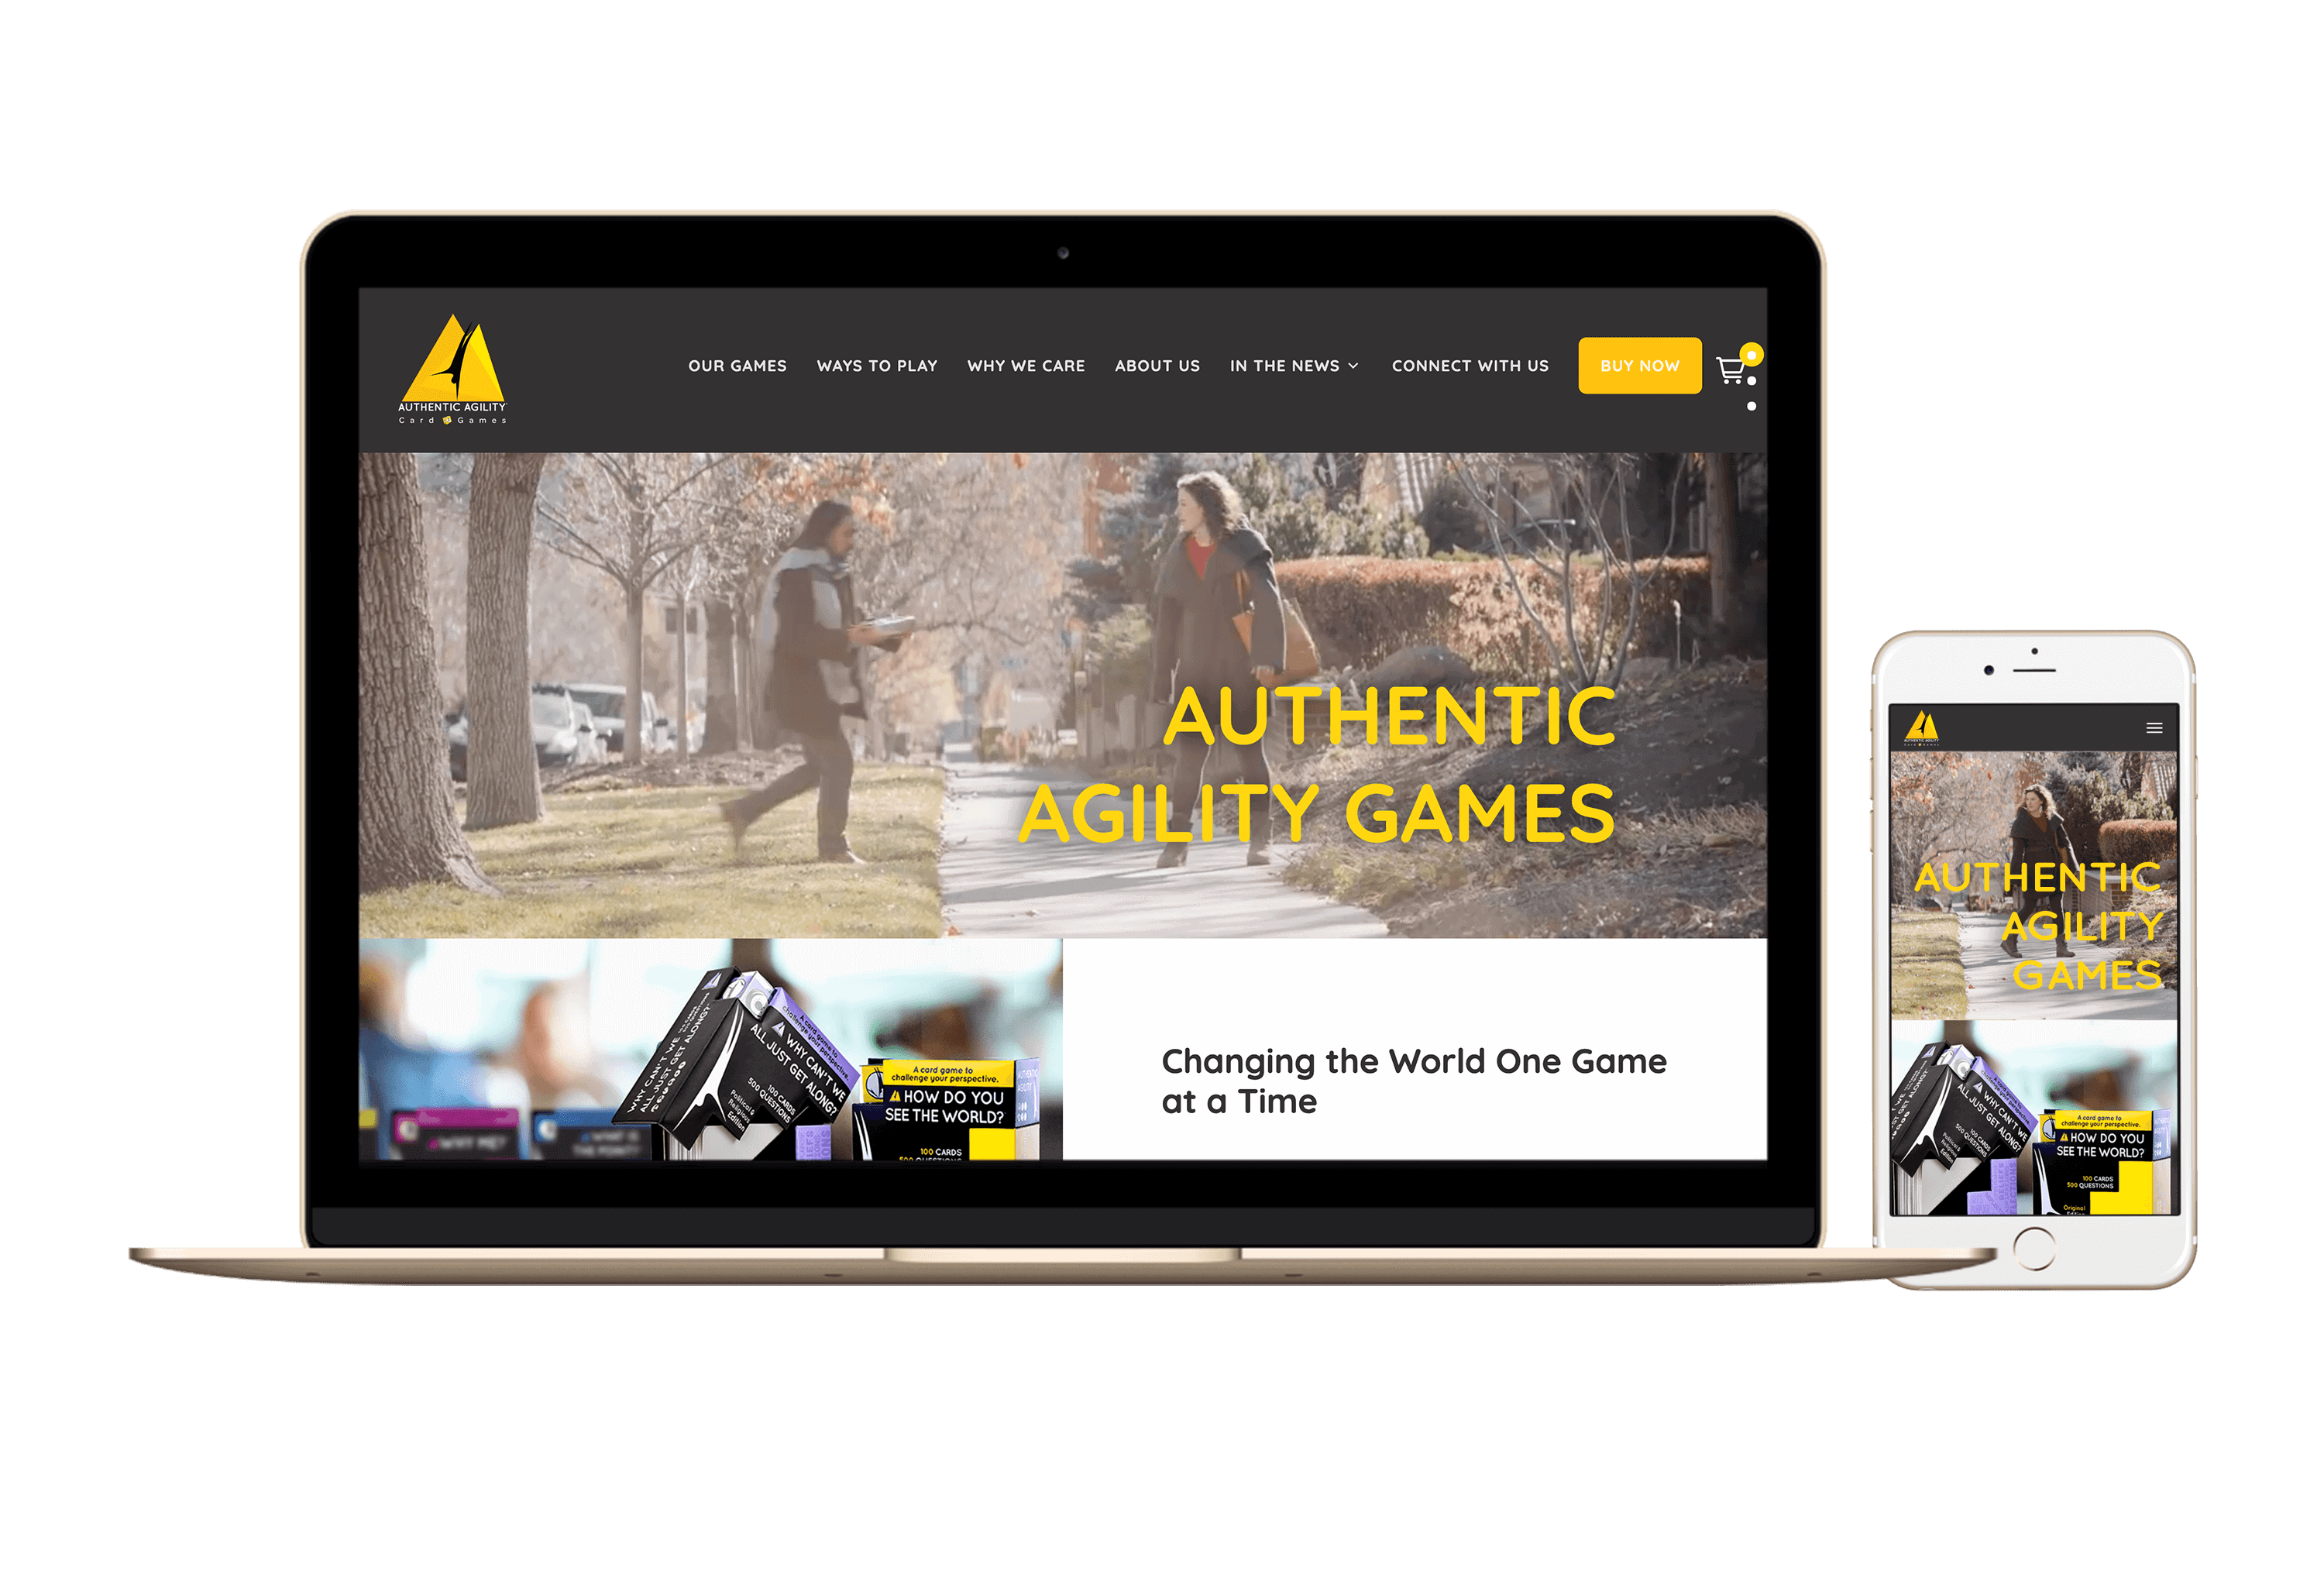 mockup of the Authentic Agility Games website on laptop and phone